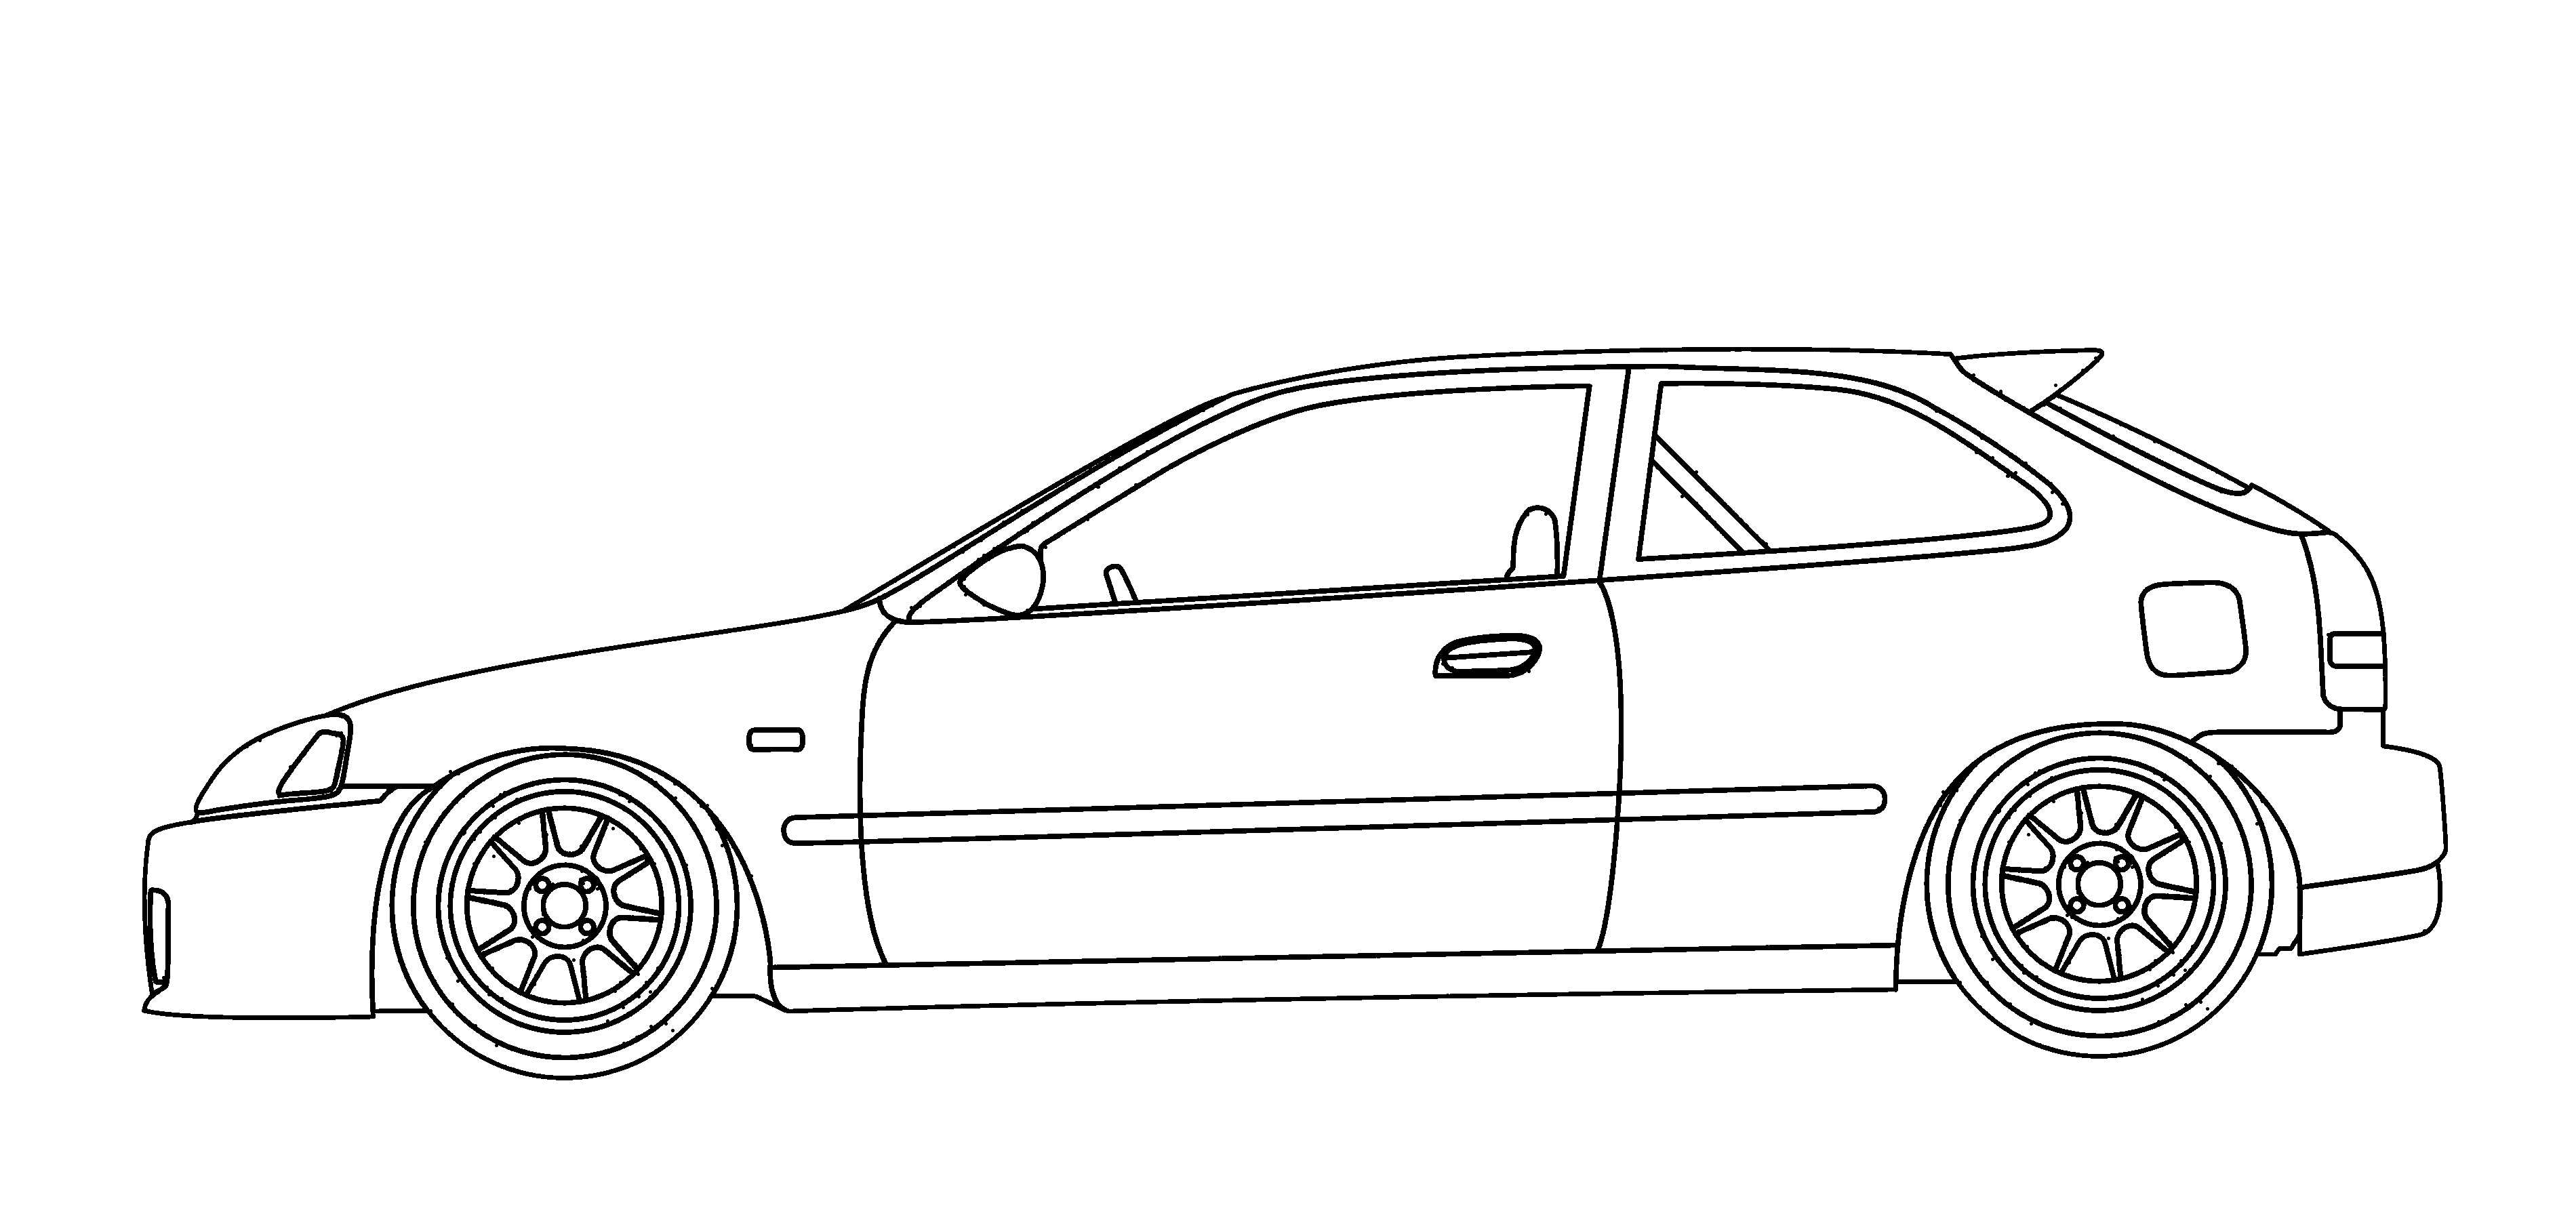 Page2 likewise Subaru Sti Wrx in addition Chrysler 200 Power Supply Wiring Diagram in addition 371416479579 moreover Integra Tcm Wiring Schematic Auto Swap 1118412. on honda civic crx